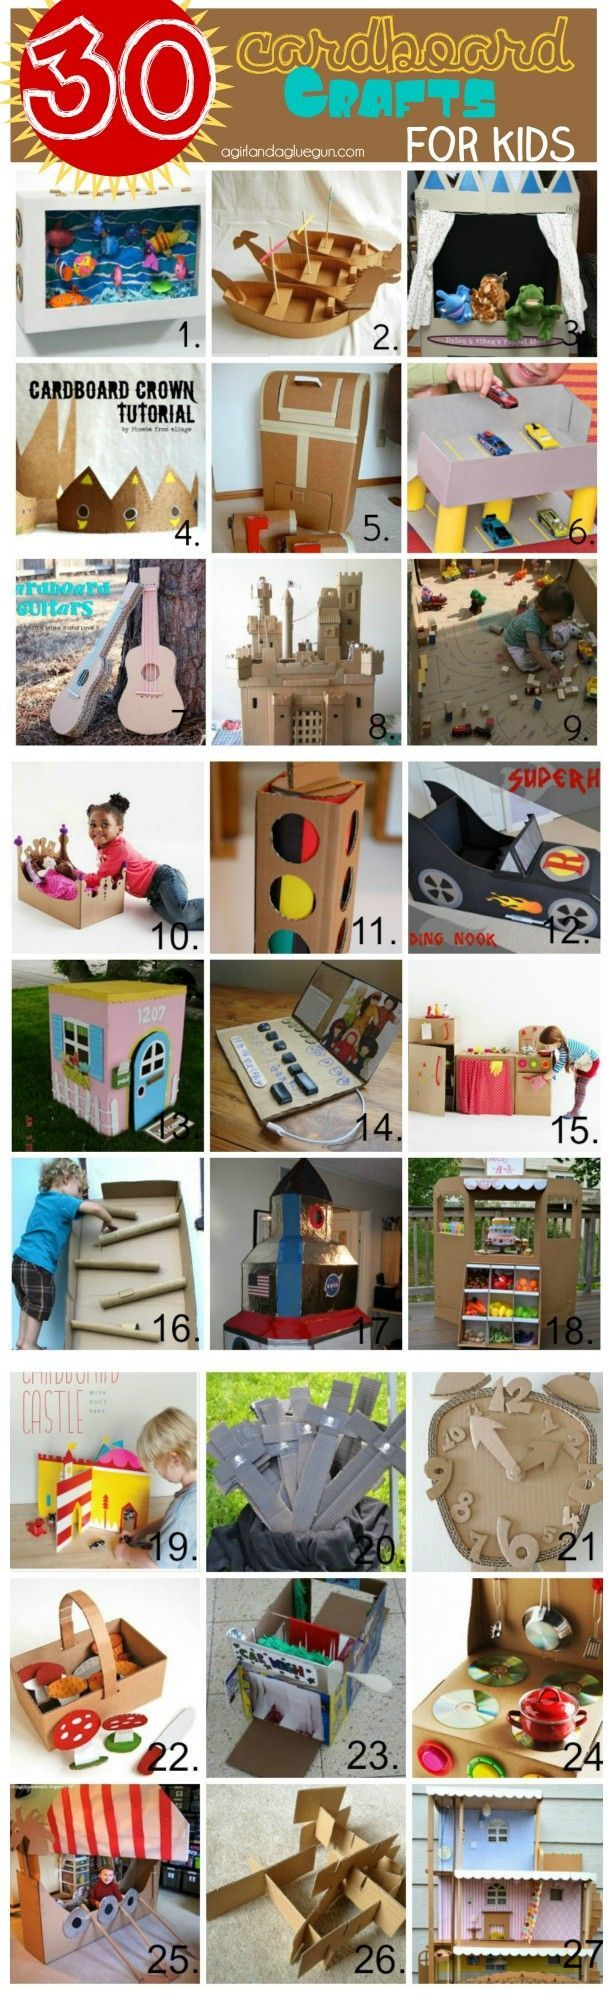 30 cardboard crafts for kids! Make a castle, boats, stop light and cars! So many fabulous ideas for summertime or rainy days! Great way to work on engineering with kids!